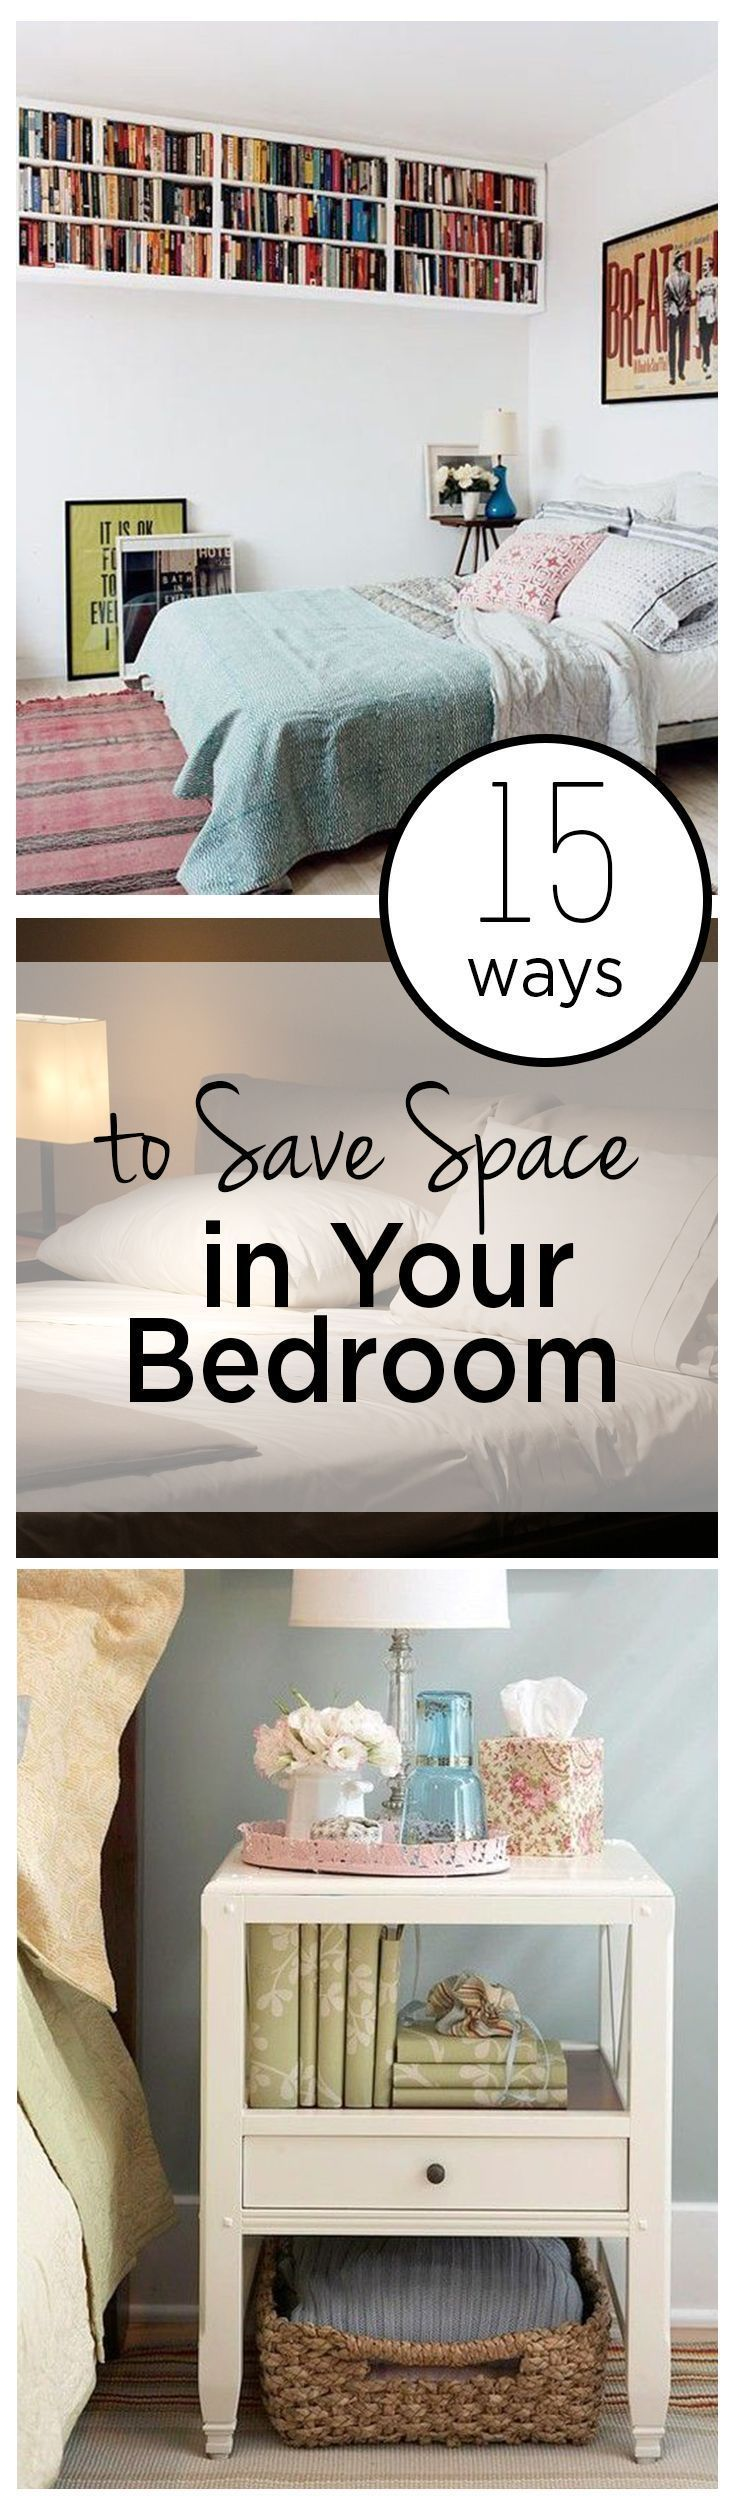 15 Ways to Save Space in Your